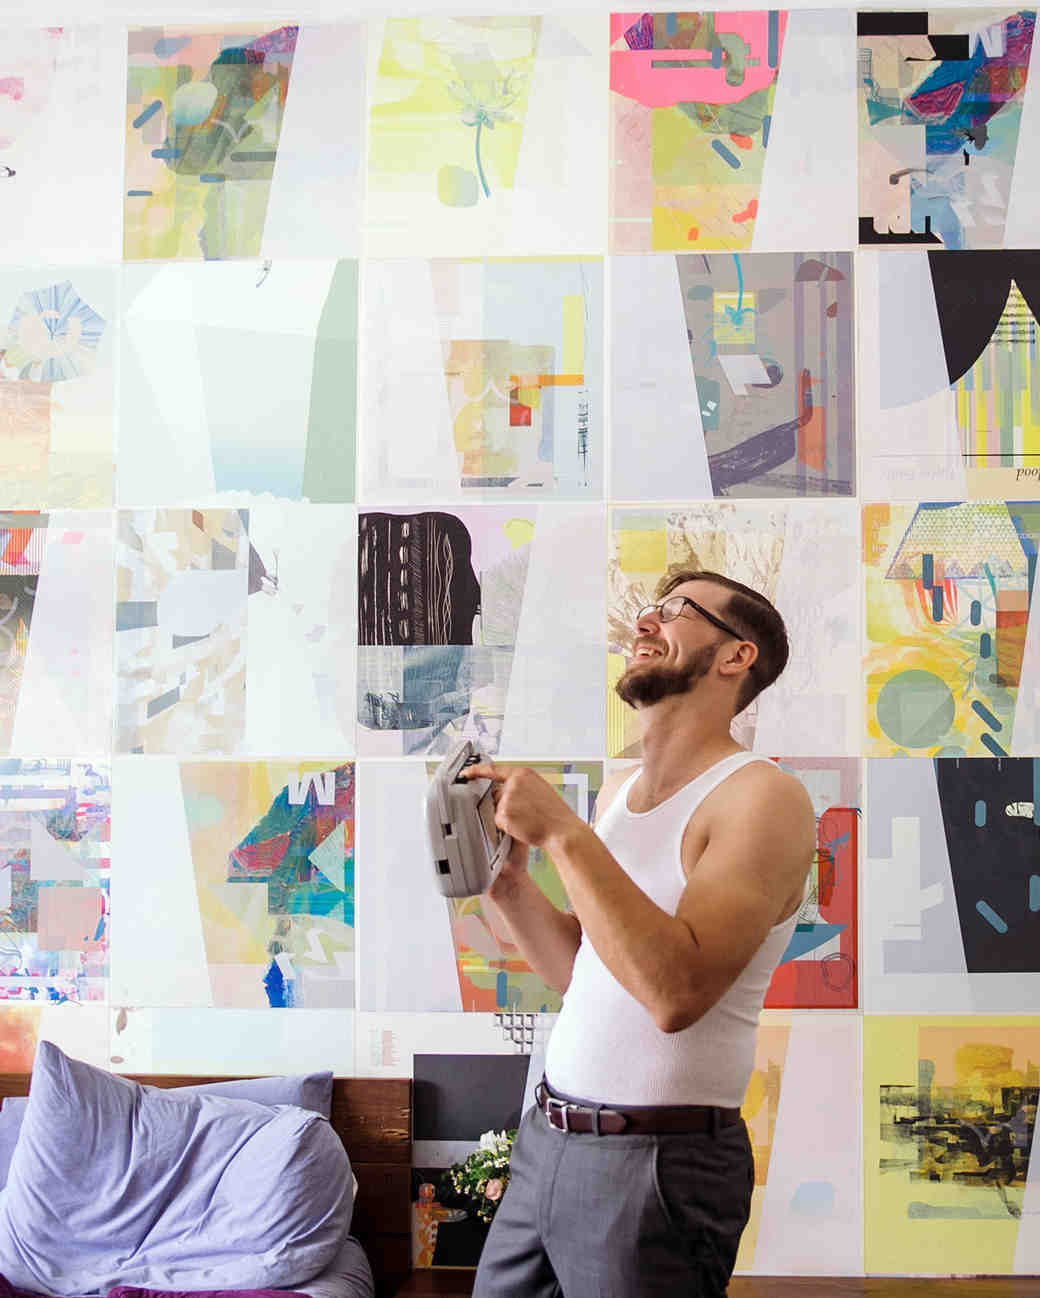 sadie-brandon-wedding-groom-7-ss112173-0915.jpg